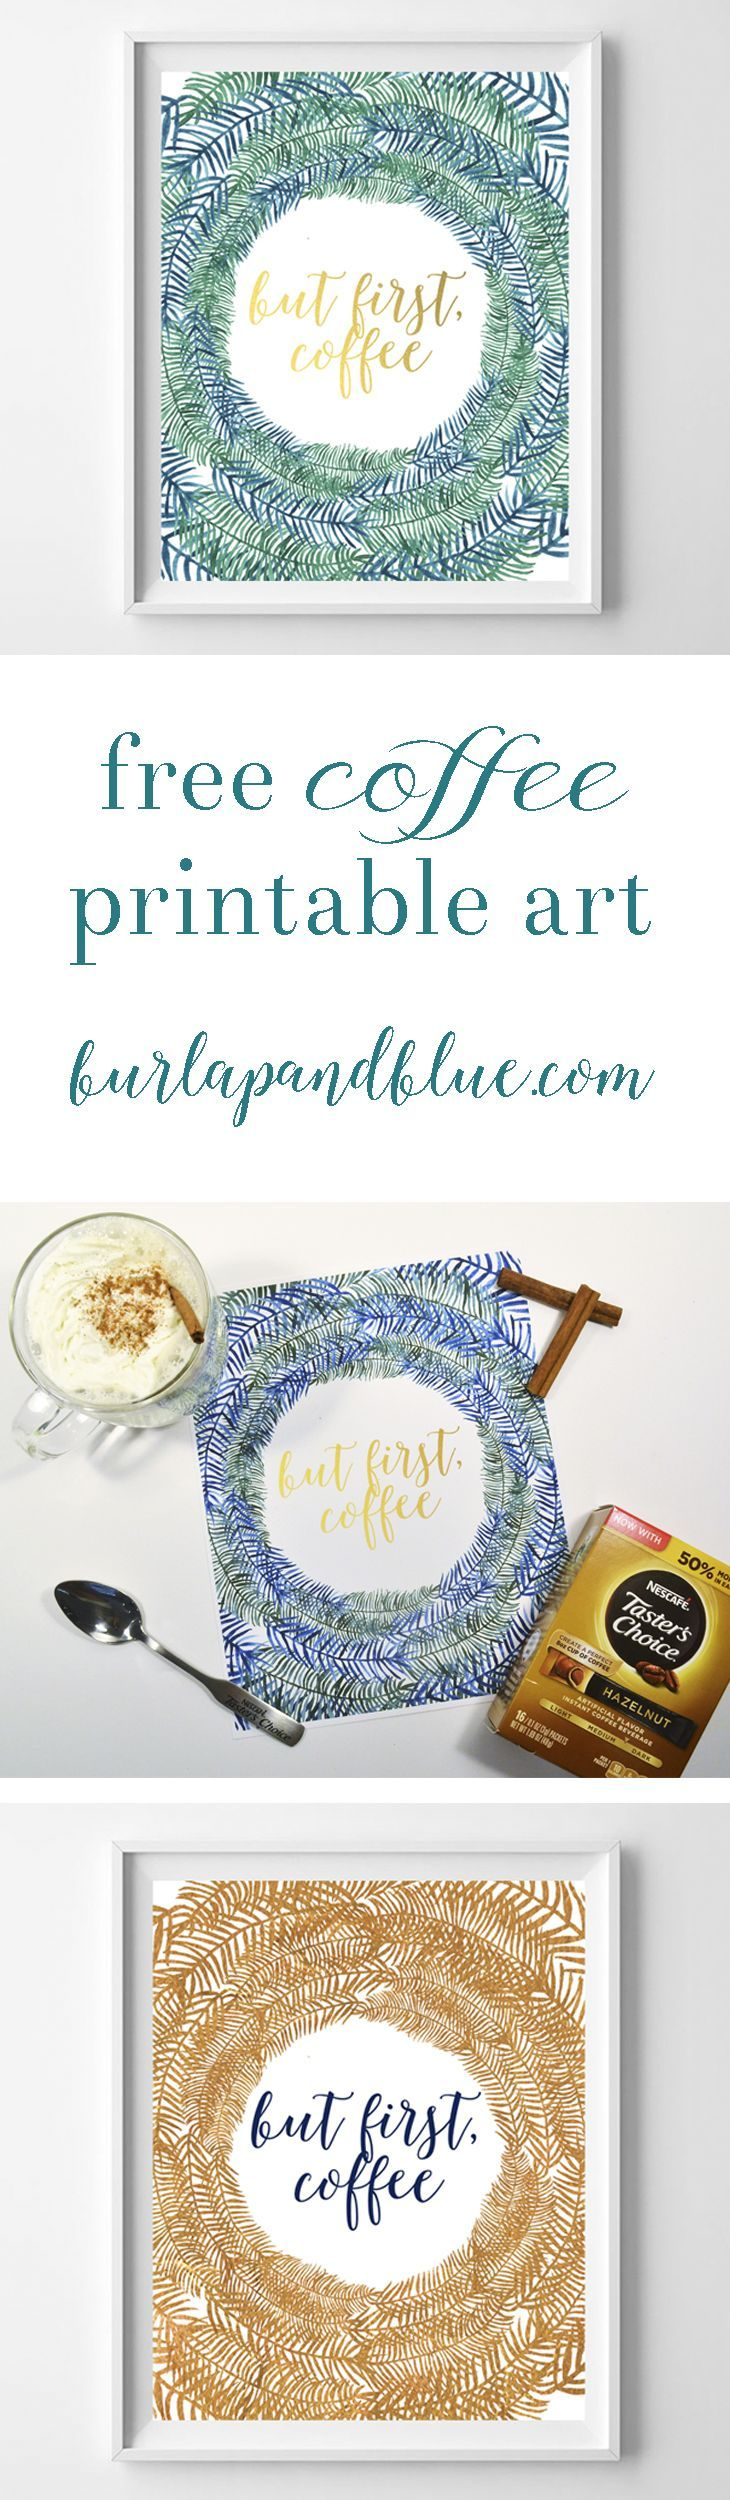 """but first, coffee"" free printable art in two color schemes-copper and navy, and green, navy and teal. Great kitchen art or the perfect gift for a coffee-loving friend"